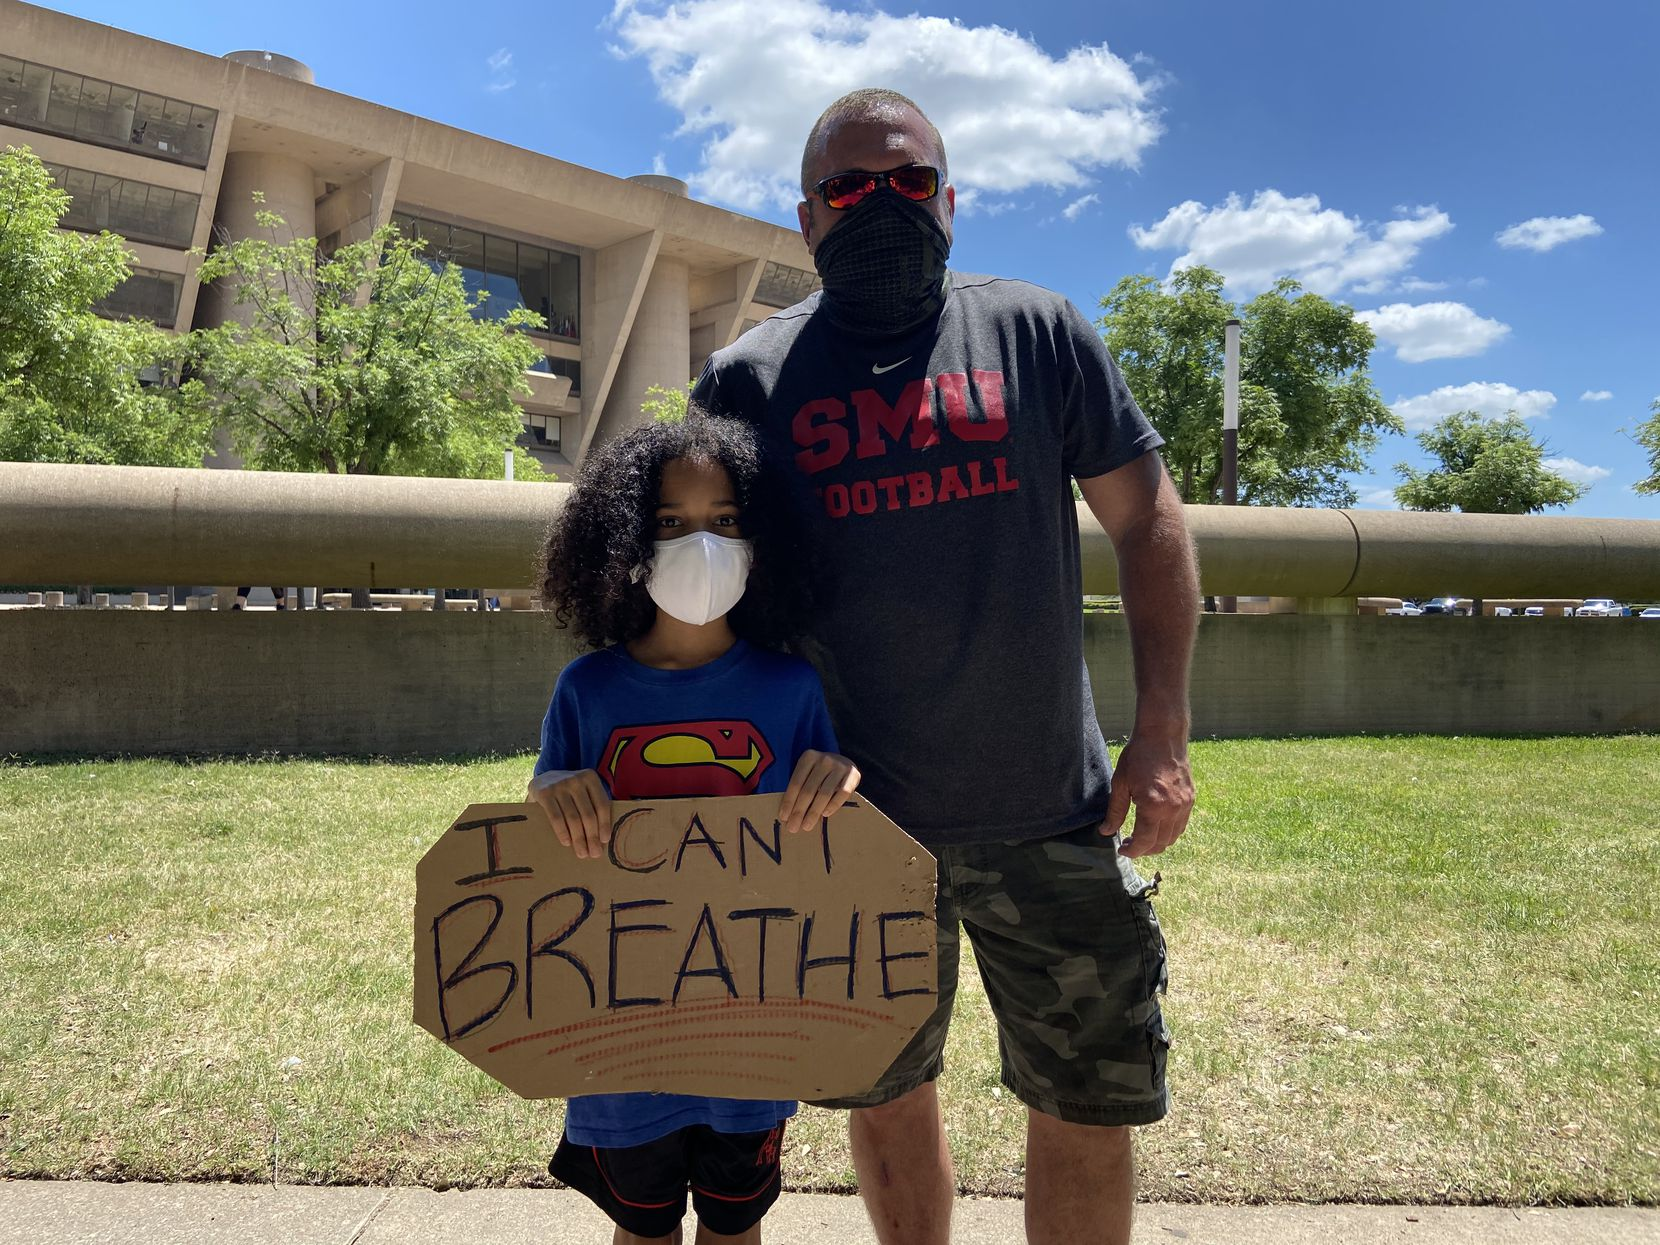 Max Nady (left) and his father Scott Nady protest outside Dallas City Hall on June 5, 2020.